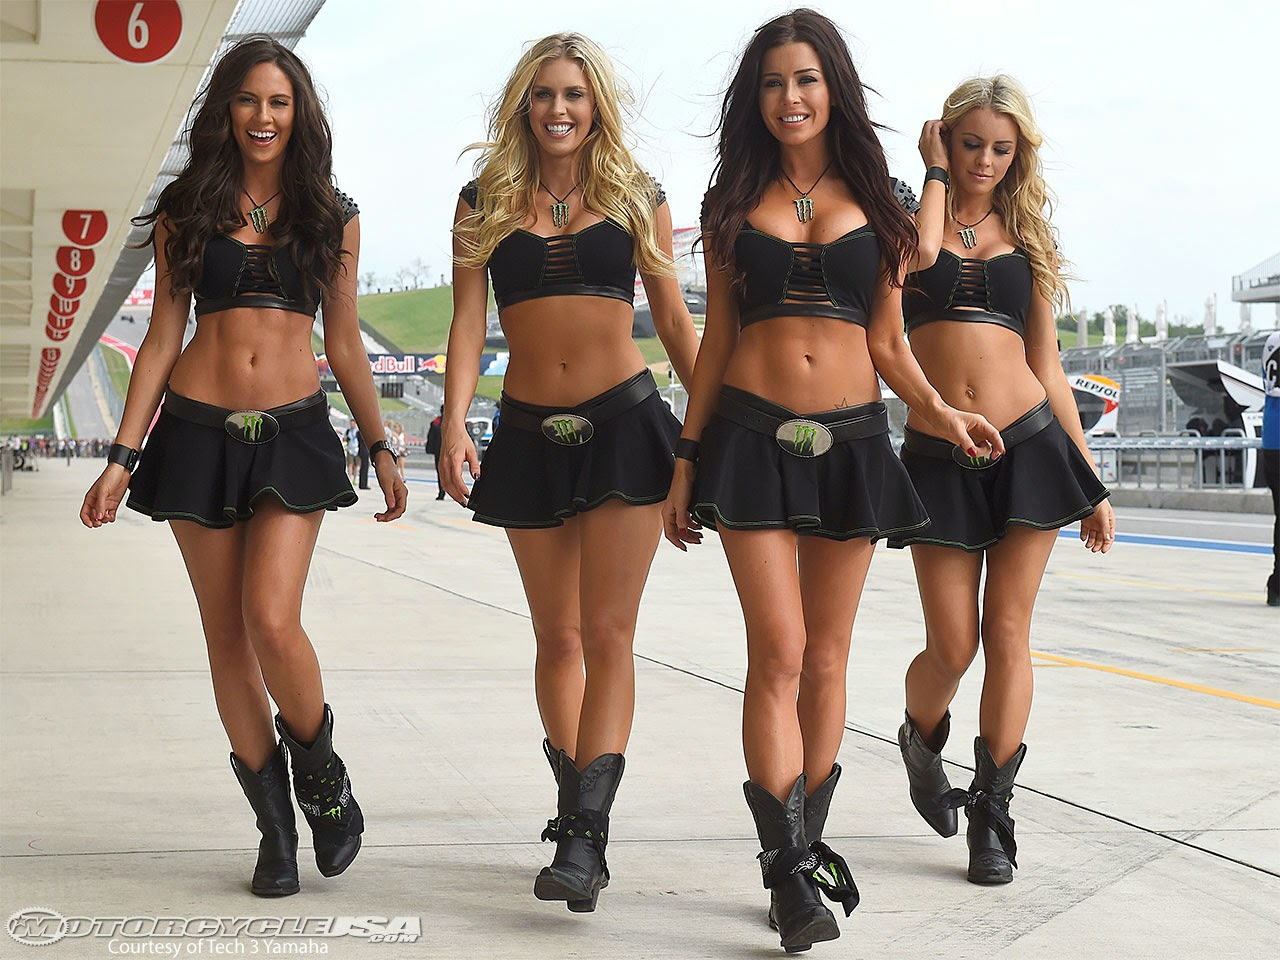 Grid girl hot asses